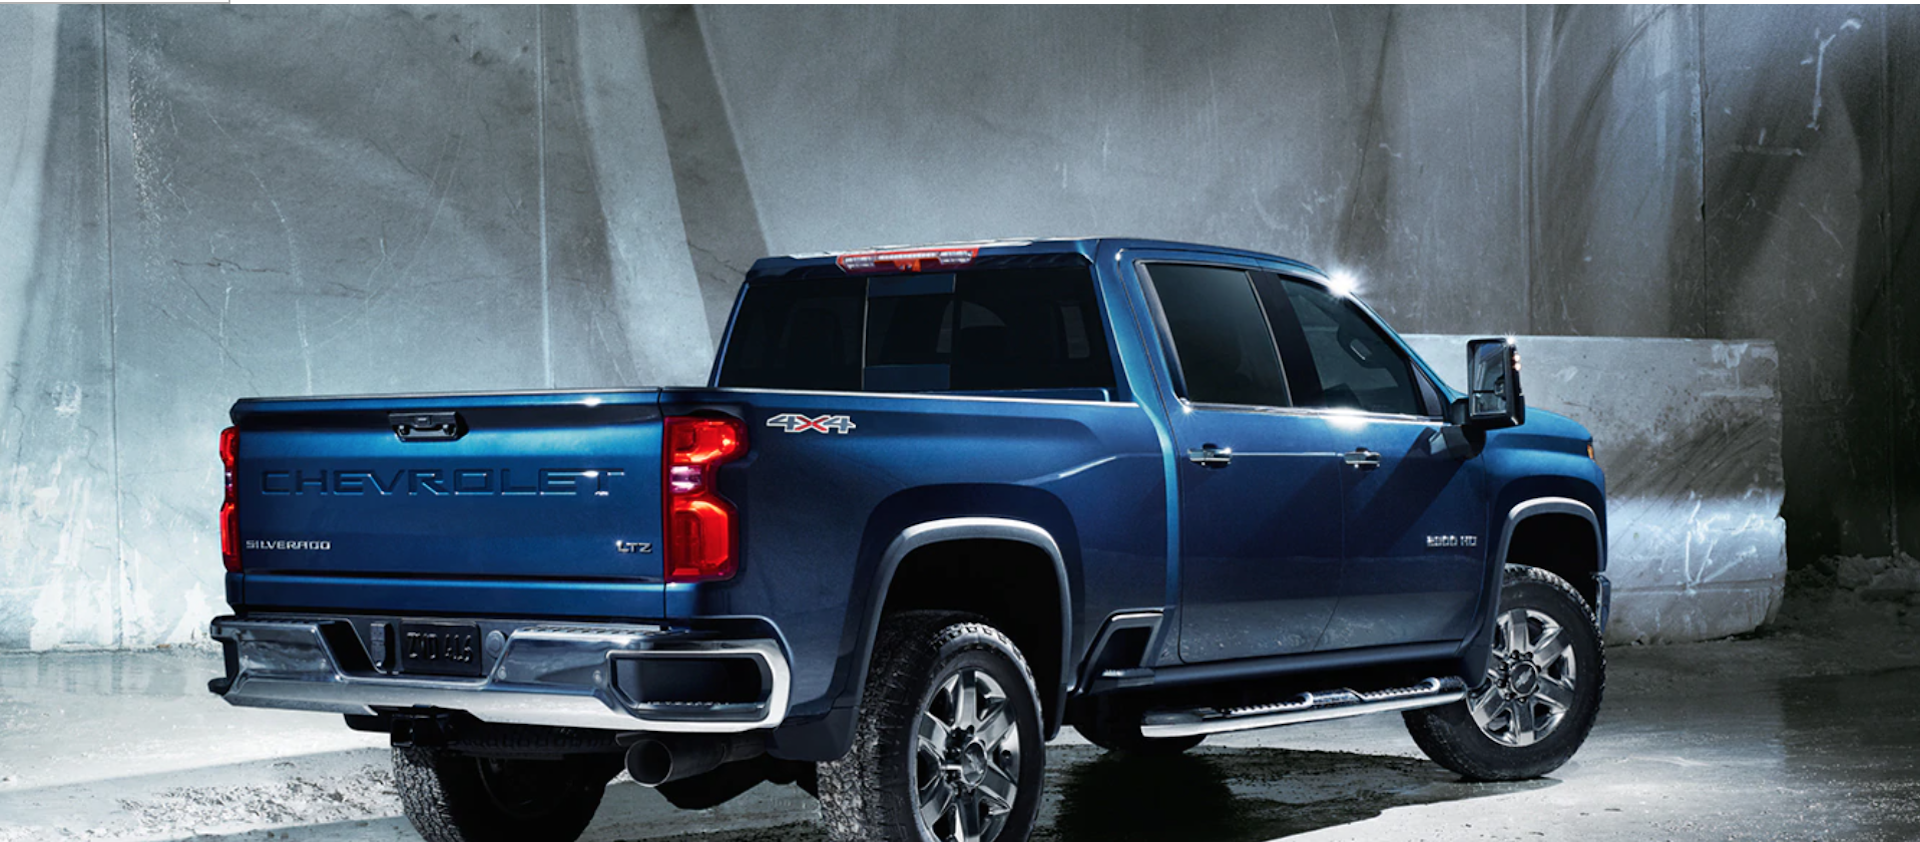 Blue 2020 Chevy Silverado available at Sewell Chevrolet in Midland TX.